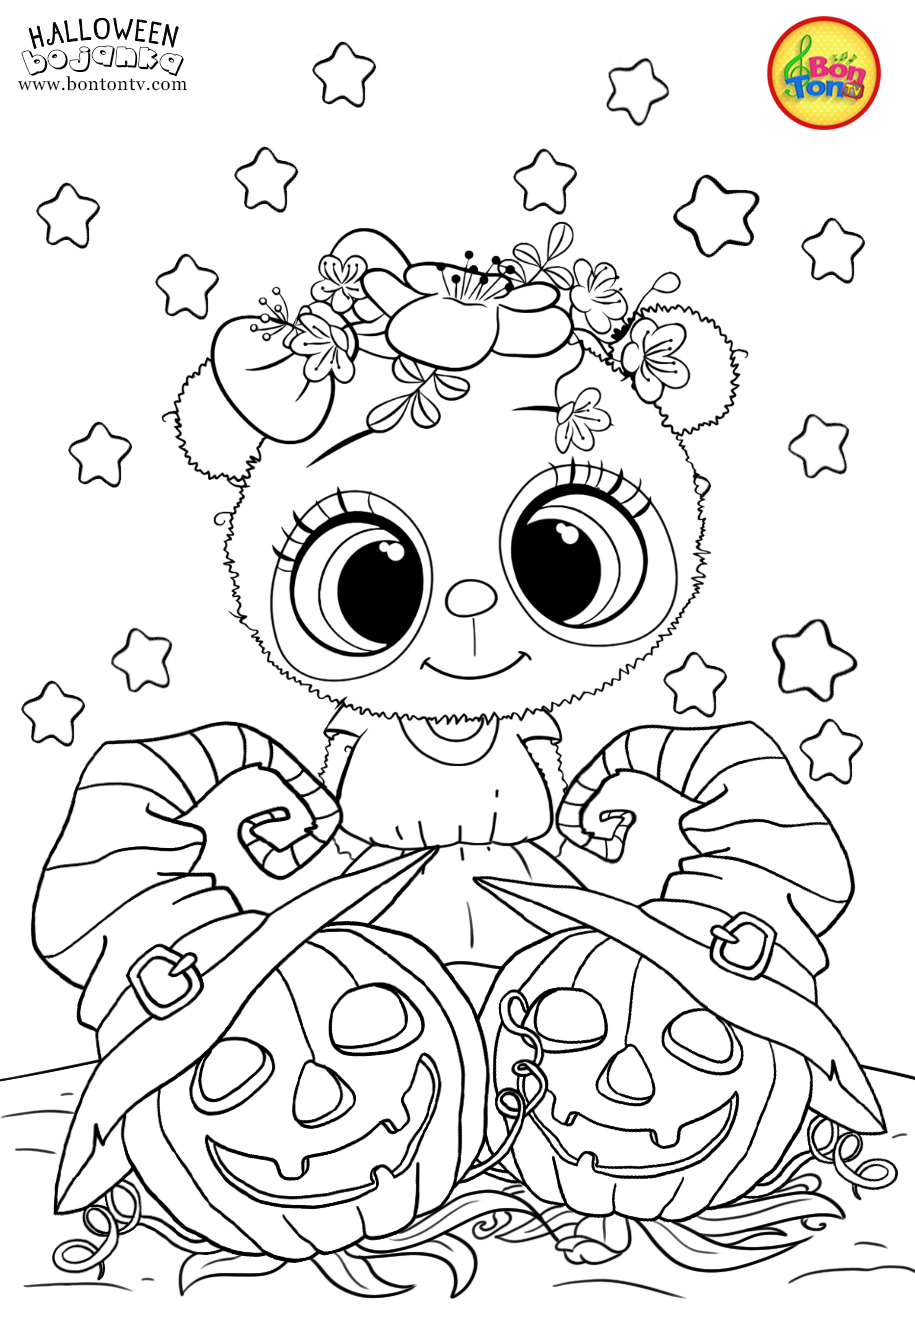 Halloween Coloring Pages For Kids Free Preschool Printables Noc Vjestica Bo Halloween Coloring Book Halloween Coloring Sheets Free Halloween Coloring Pages